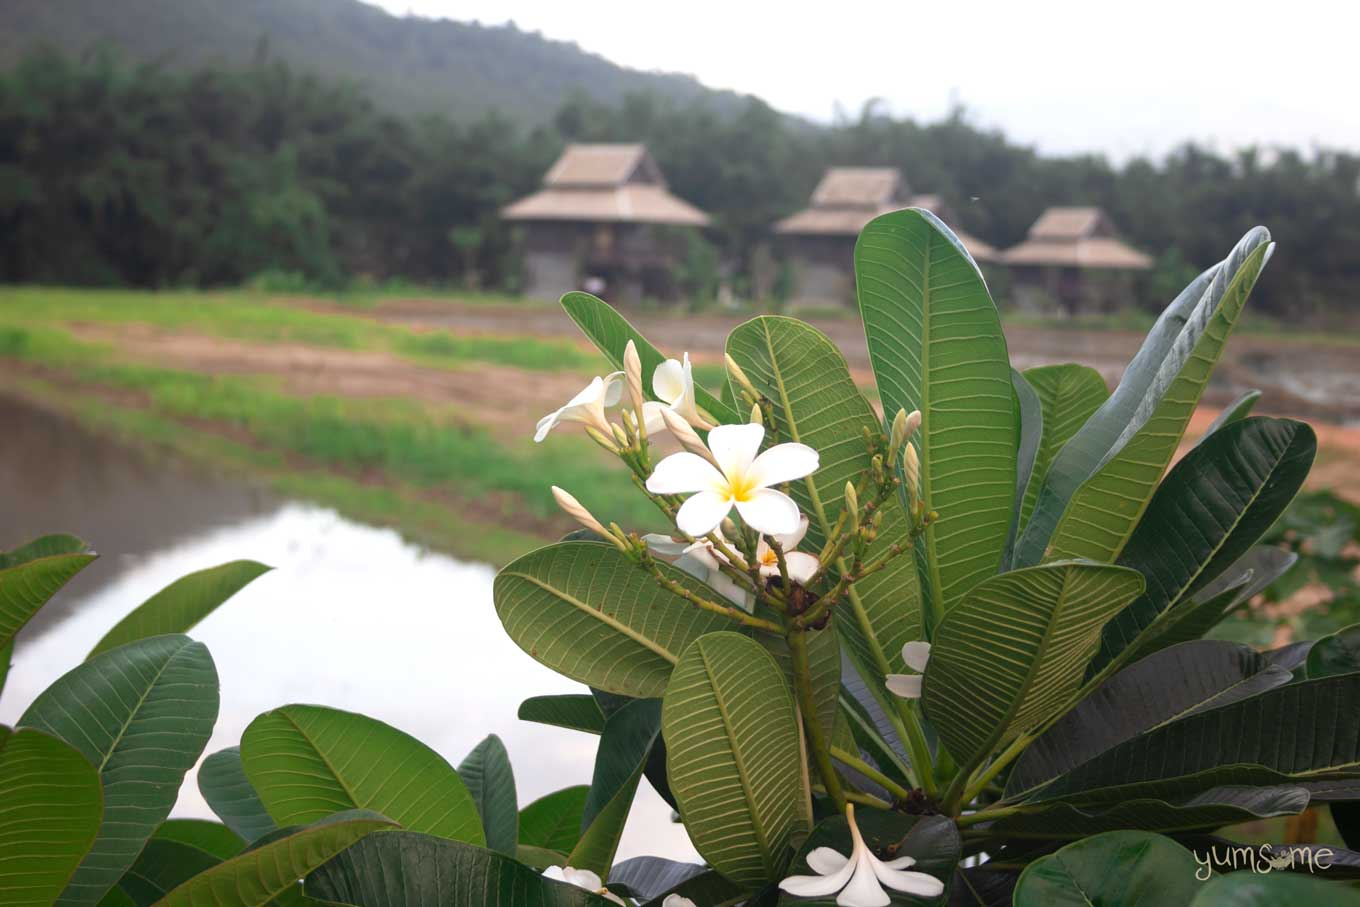 Frangipani tree with a white and yellow flower, and wooden Thai houses in the distance.